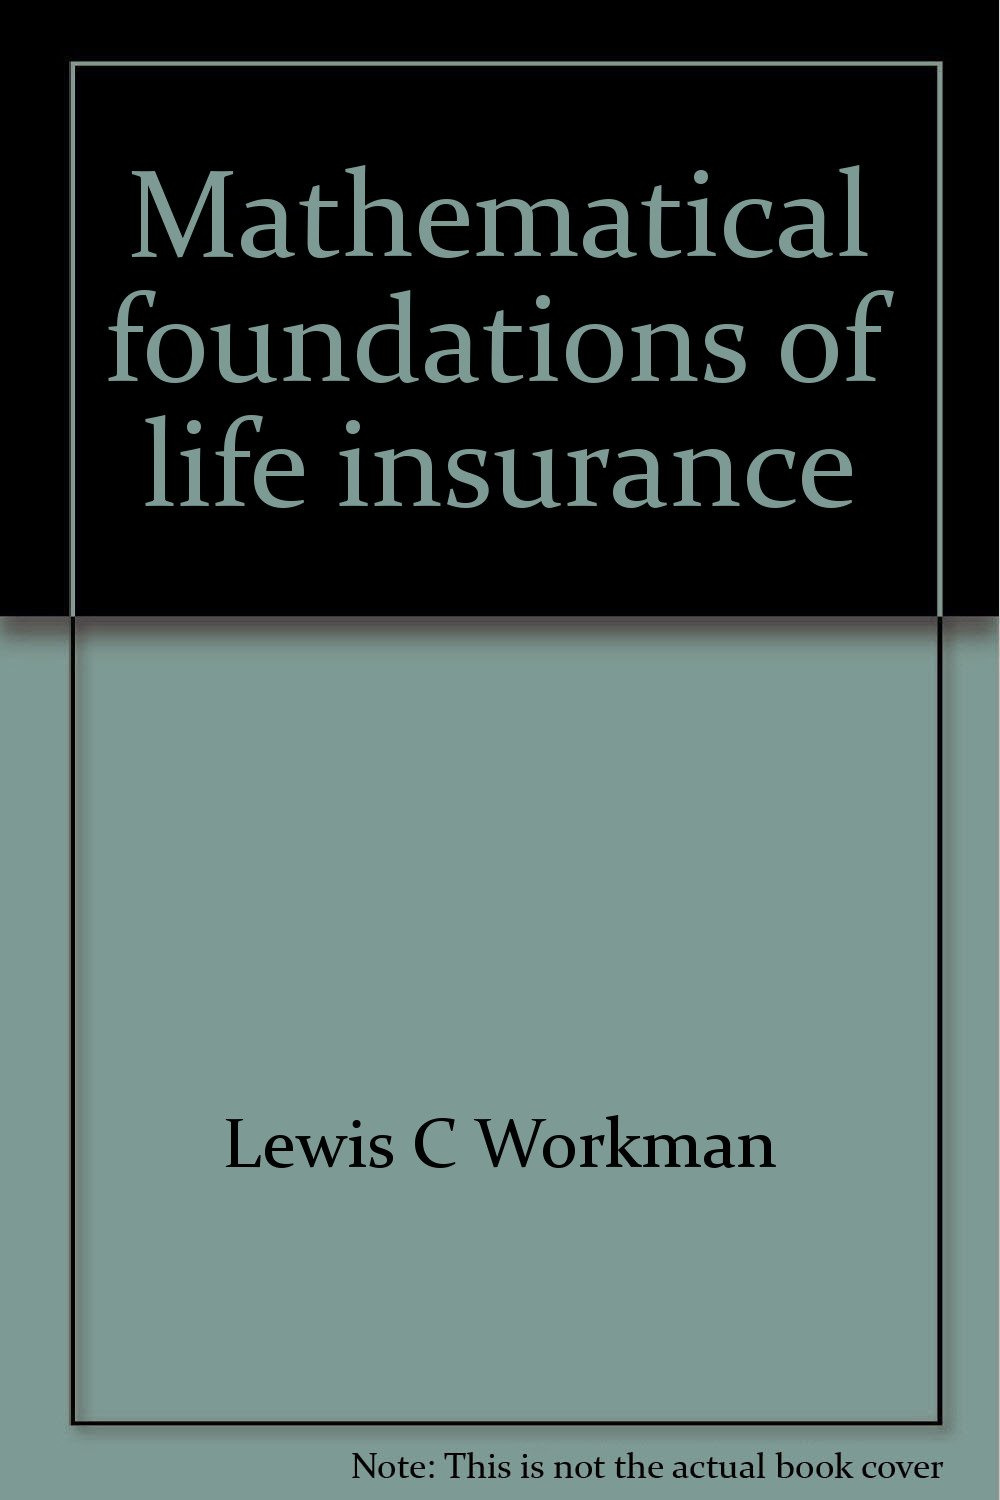 Mathematical foundations of life insurance